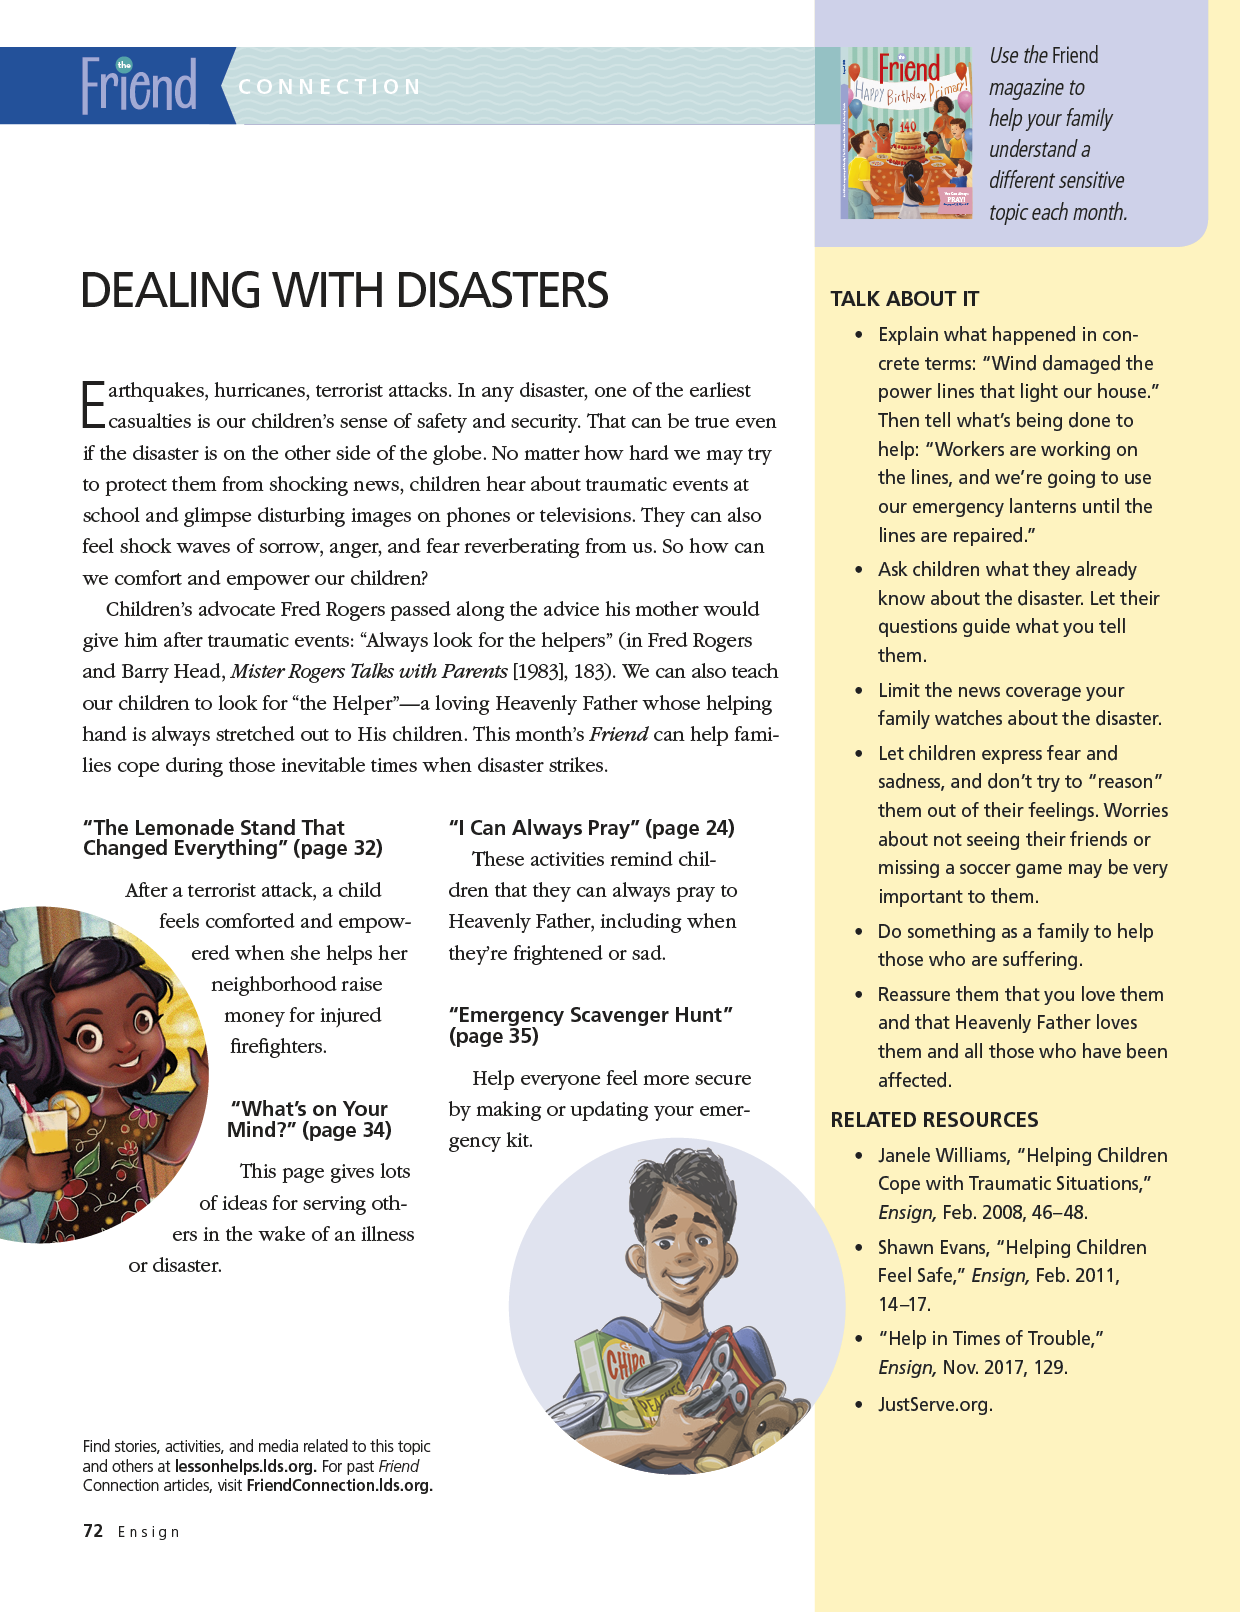 Dealing with Disasters - ensign